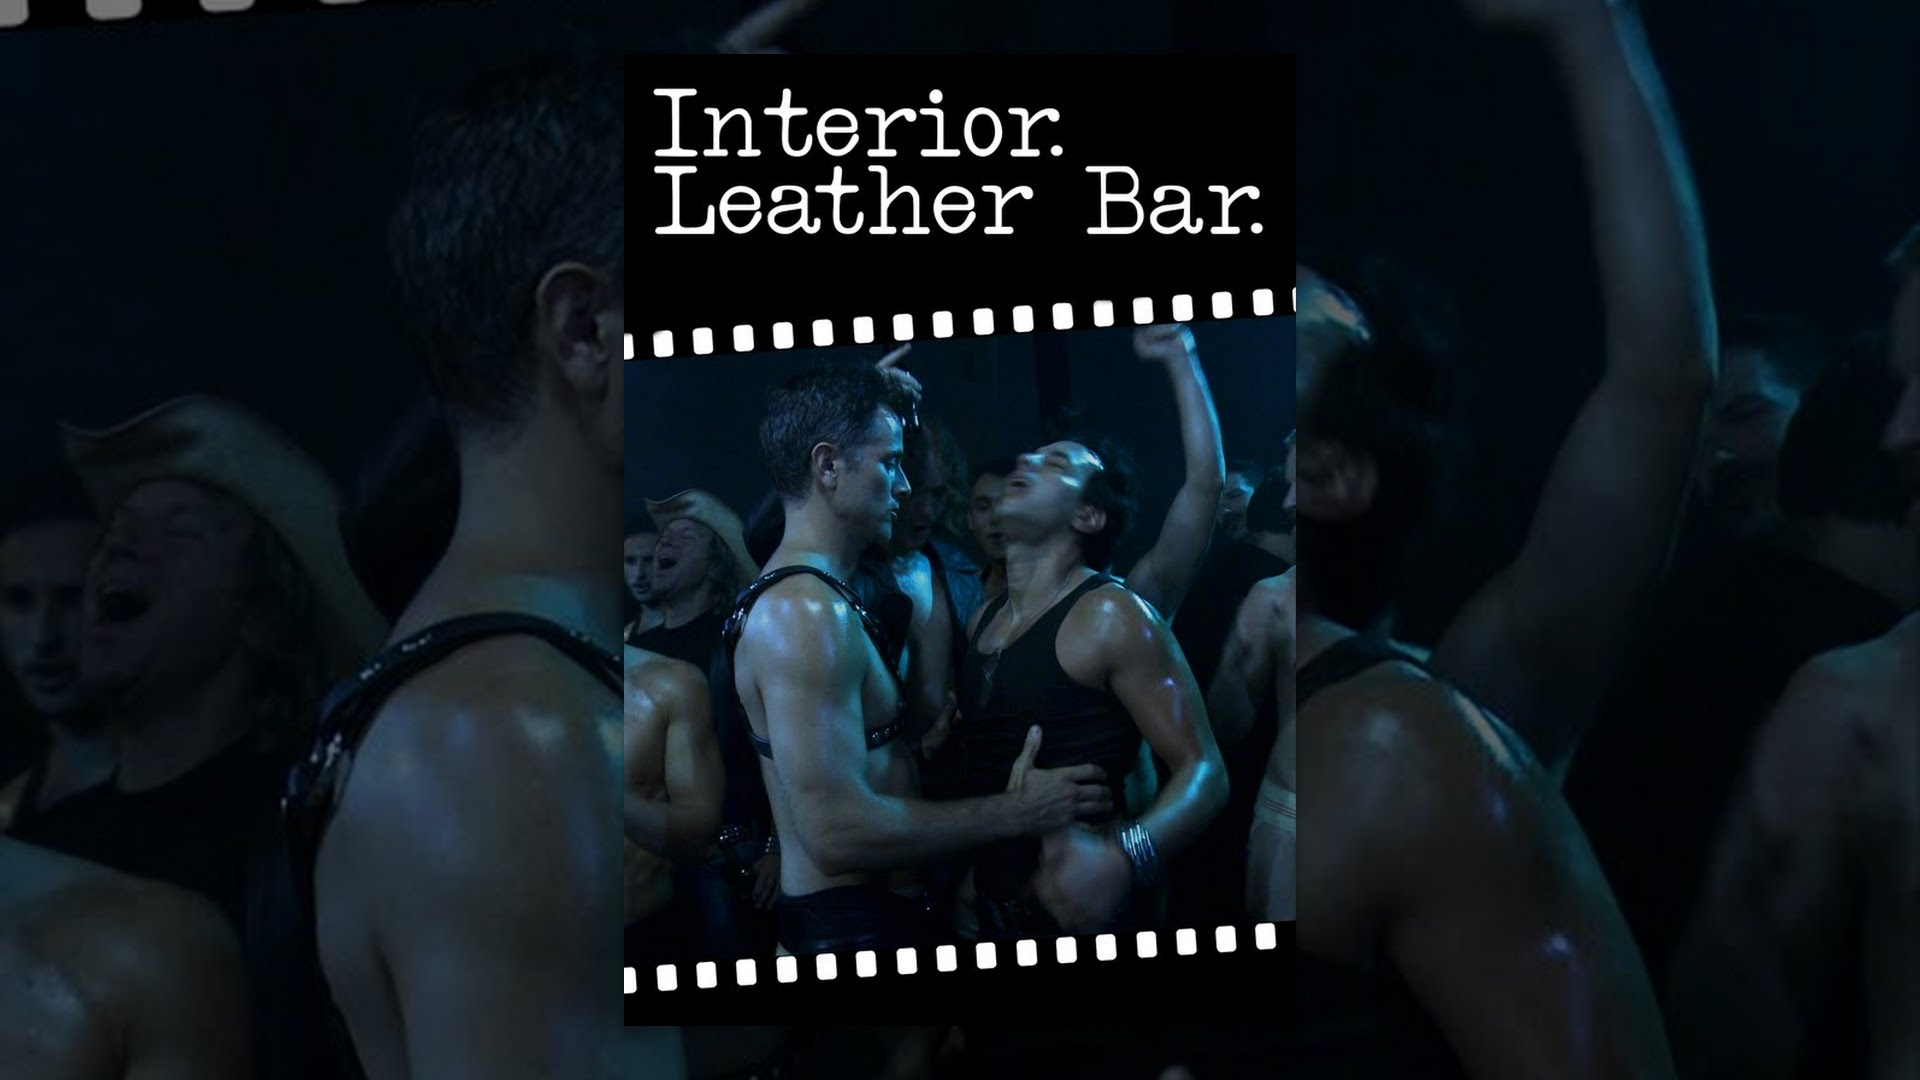 Interior leather bar youtube for Interior leather bar